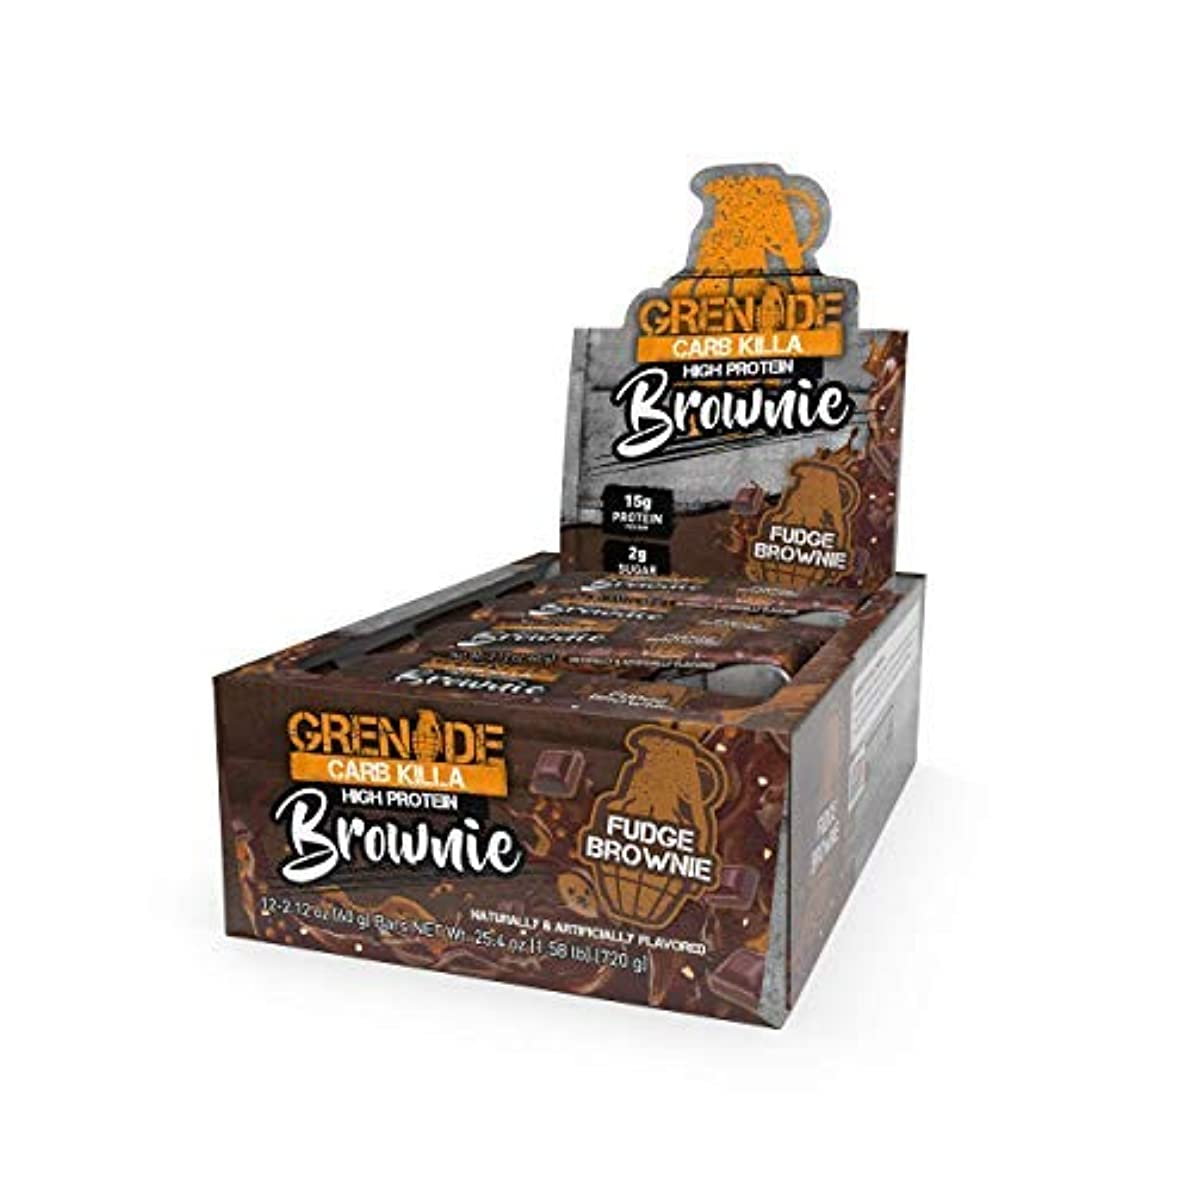 ケーブルカーダッシュ習熟度Grenade Carb Killa Brownie High Protein Suitable Meal Replacement for Weight Loss 60 Grams Pack of 12 [並行輸入品]